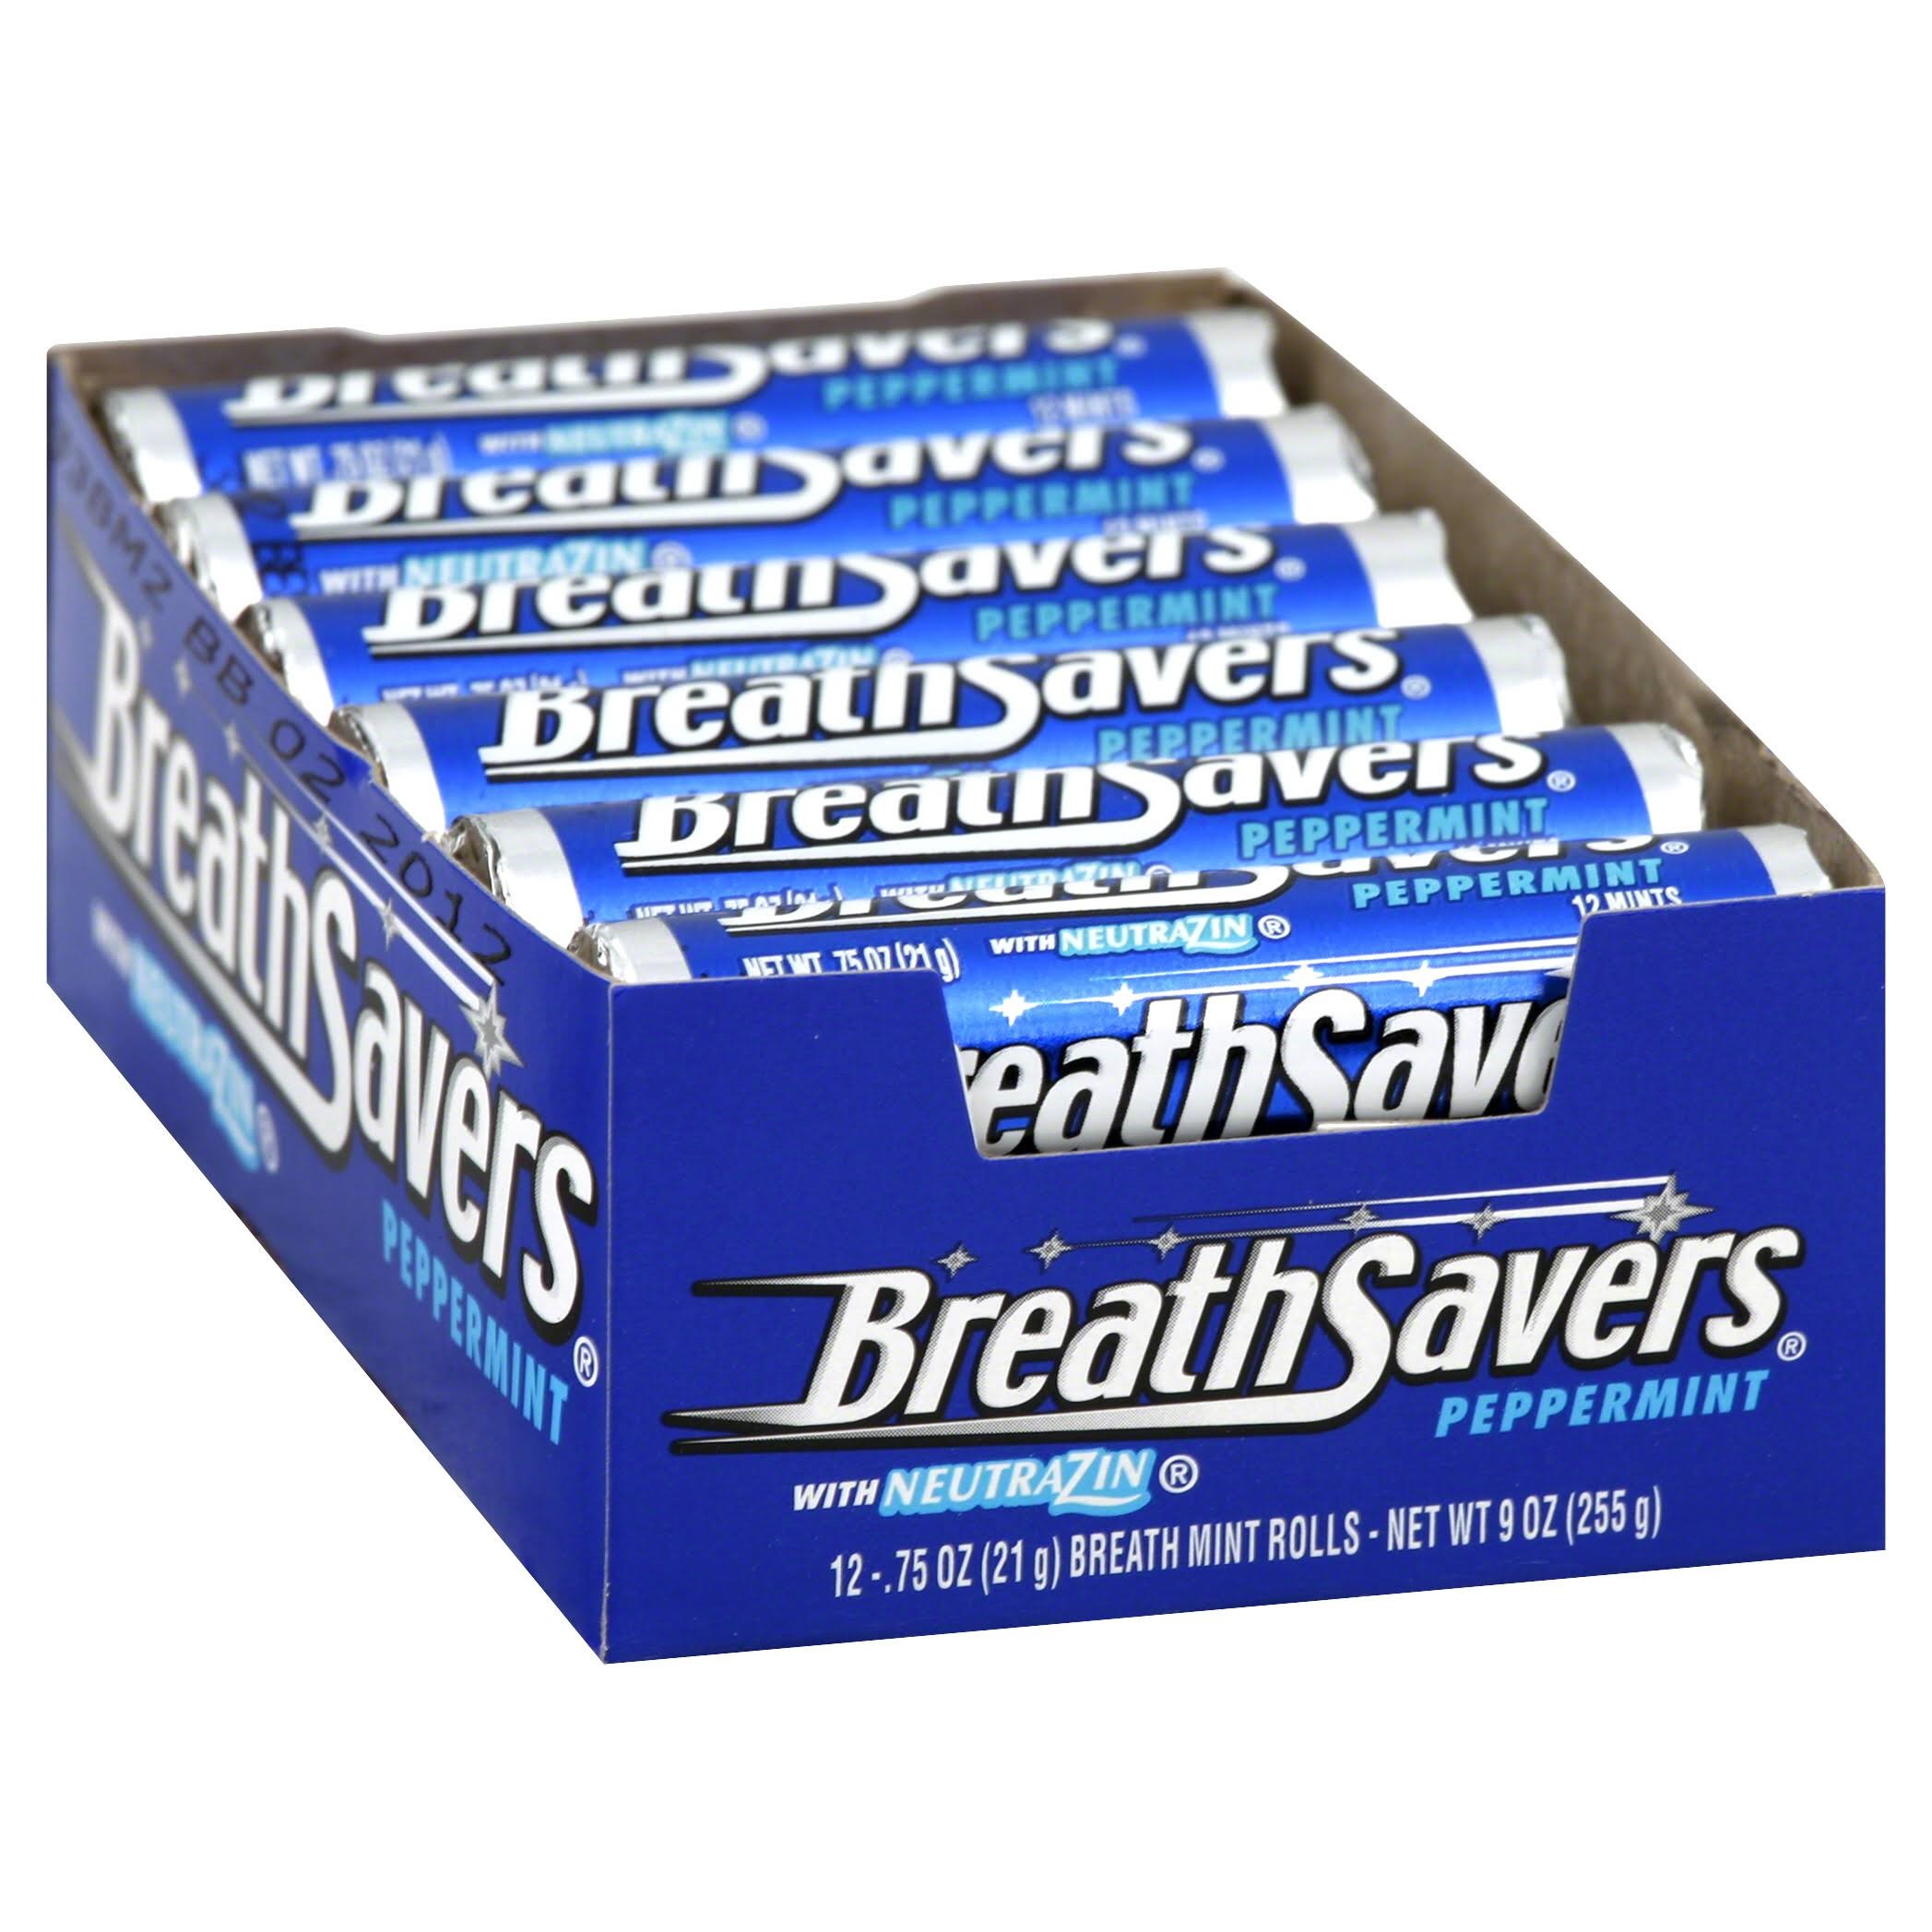 Breath Savers Mints, Peppermint by Hershey's